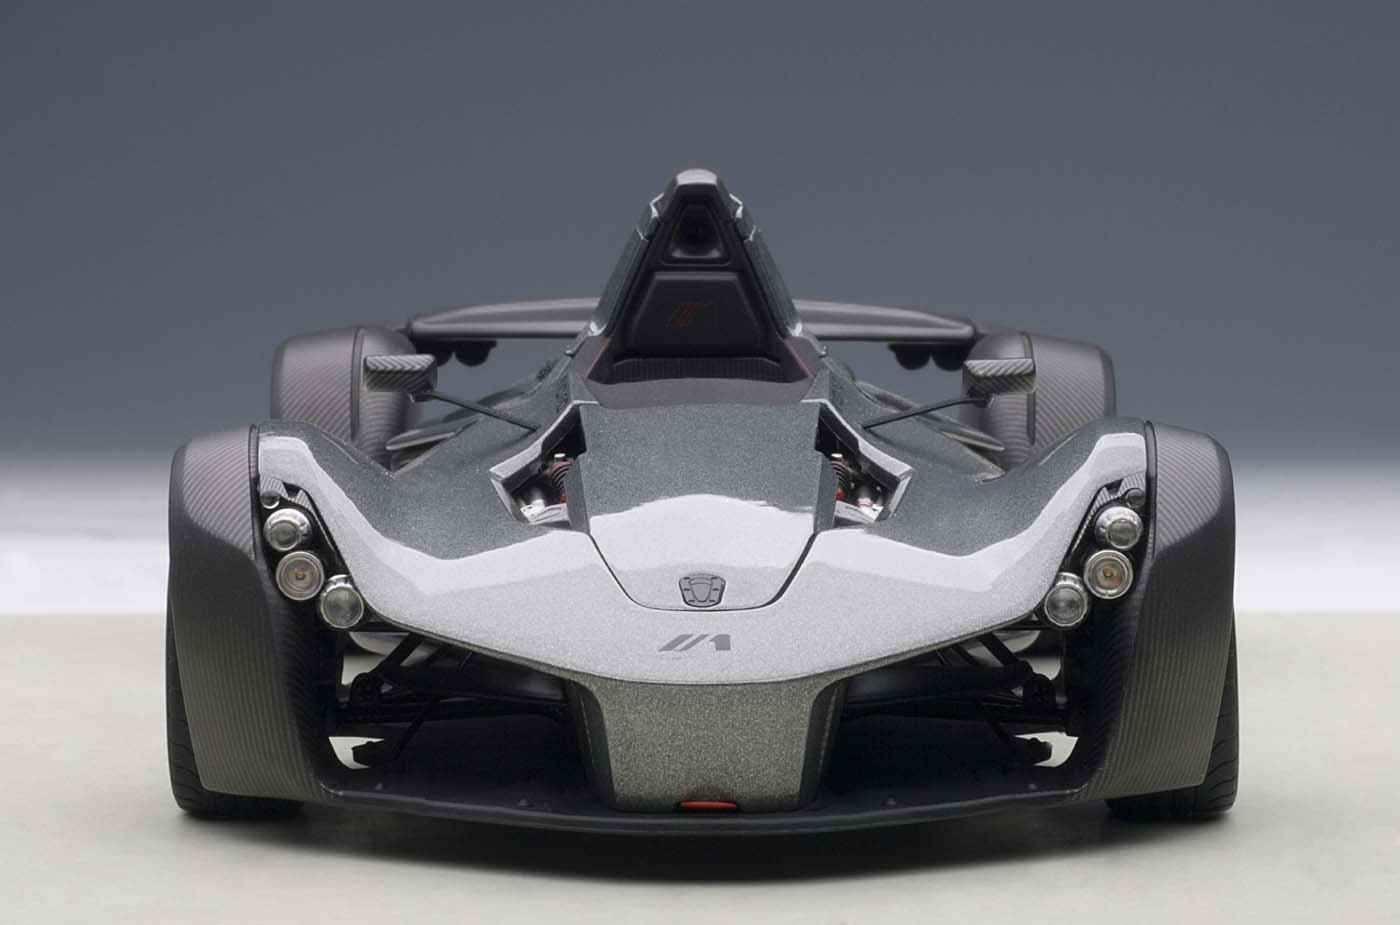 AUTOart Highly detailed die-cast model BAC Mono Gunmetal ...